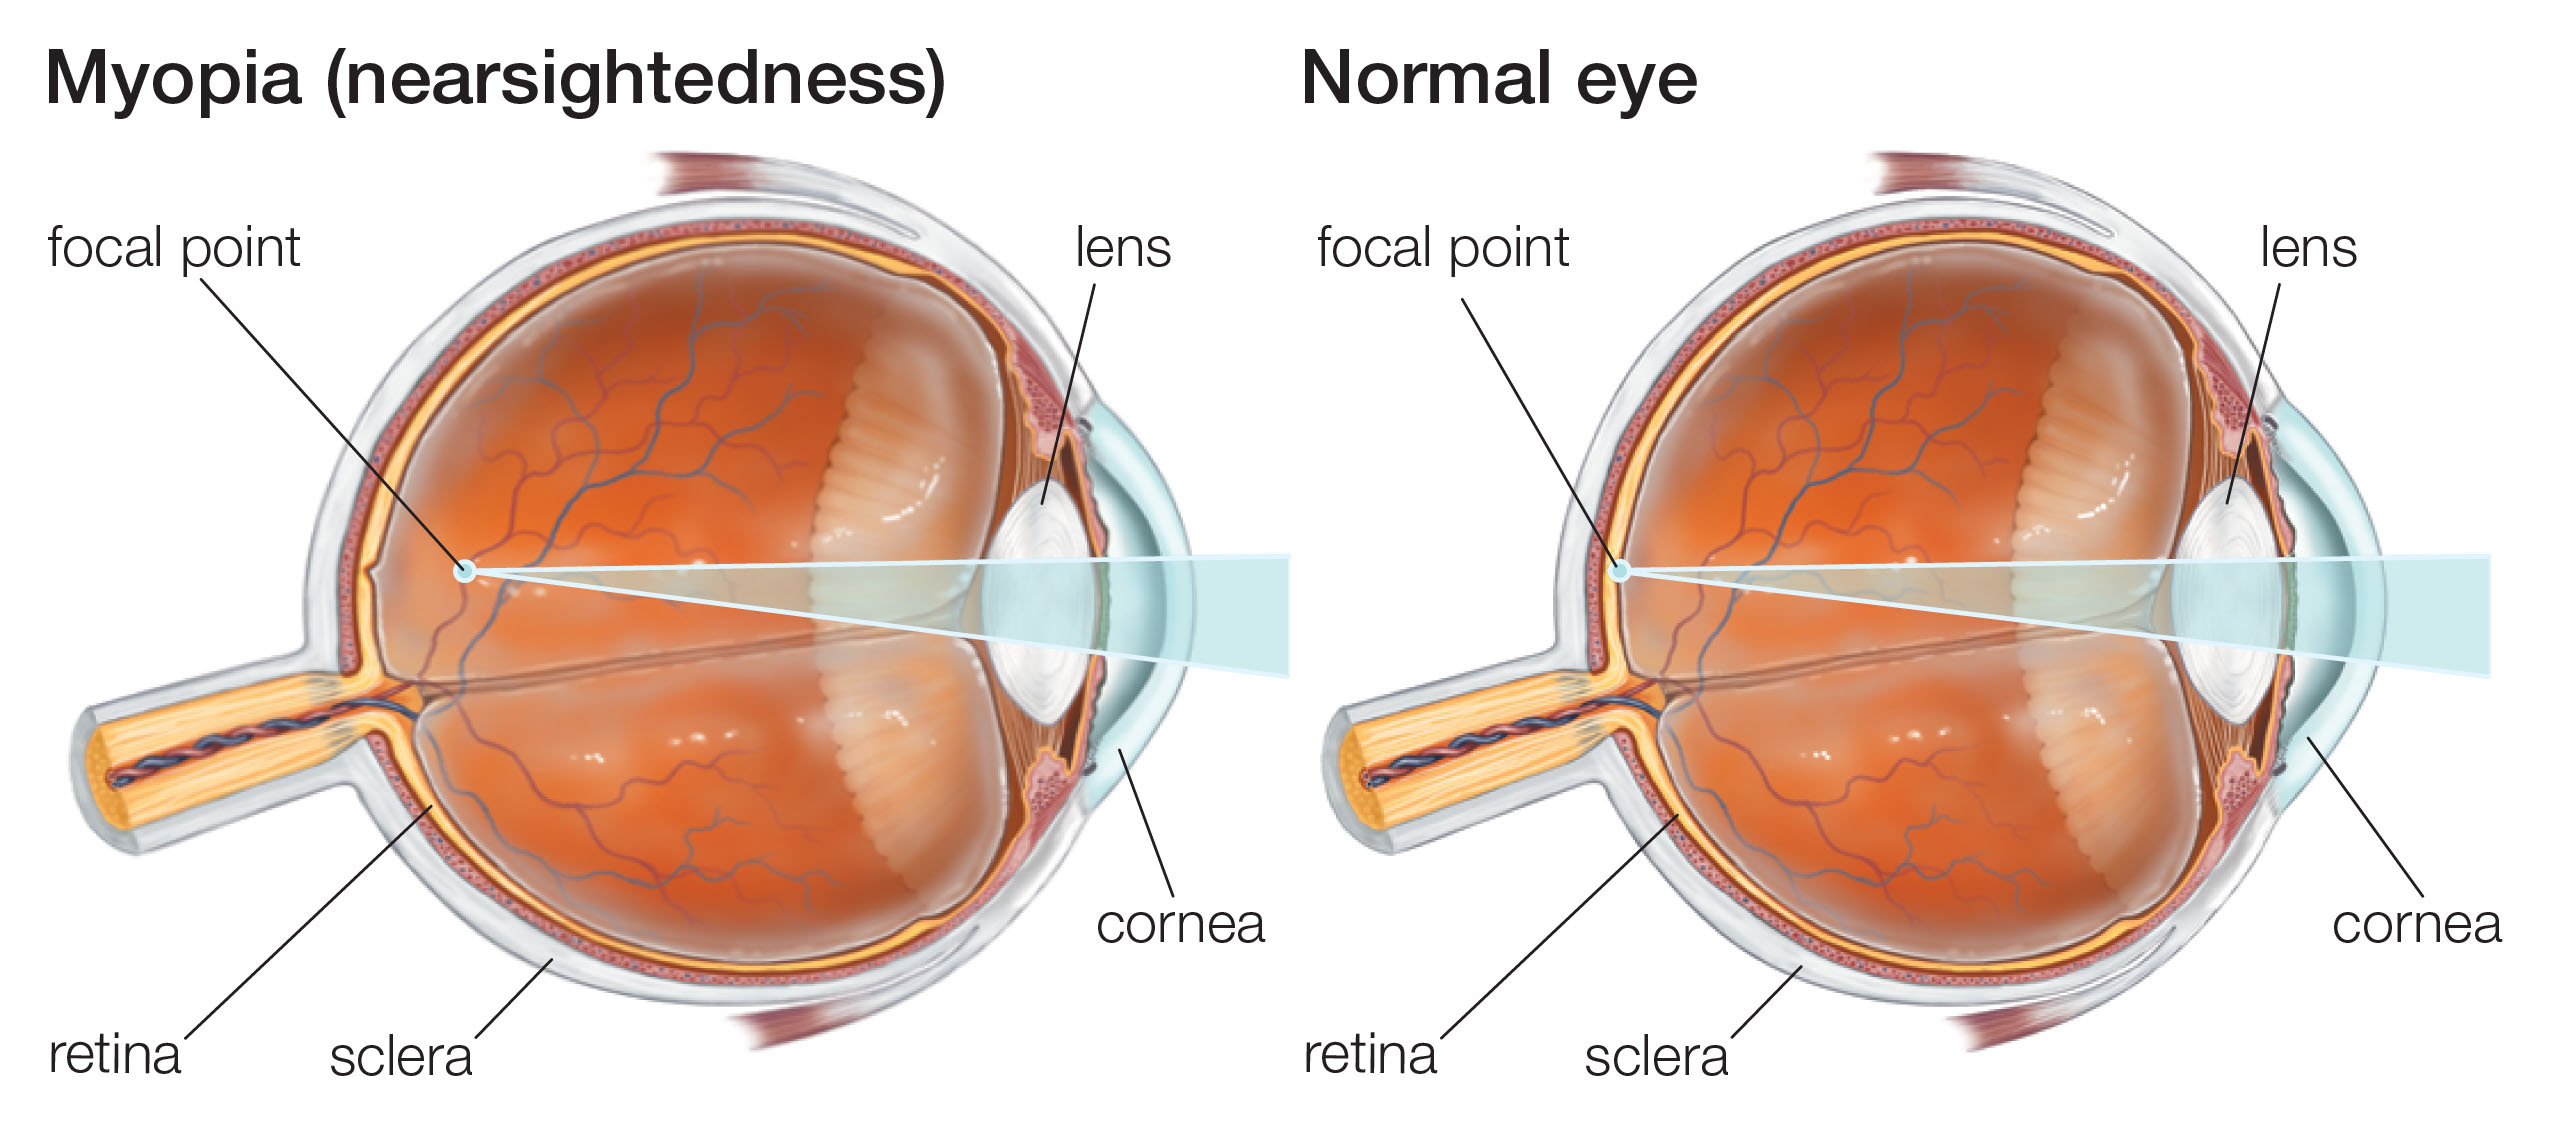 eye diseases nearsightedness Nearsightedness myopia is a condition where the eye is longer than it should be and therefore the rays from the observed object are concentrated in front of the focal point, which creates a blurred image.